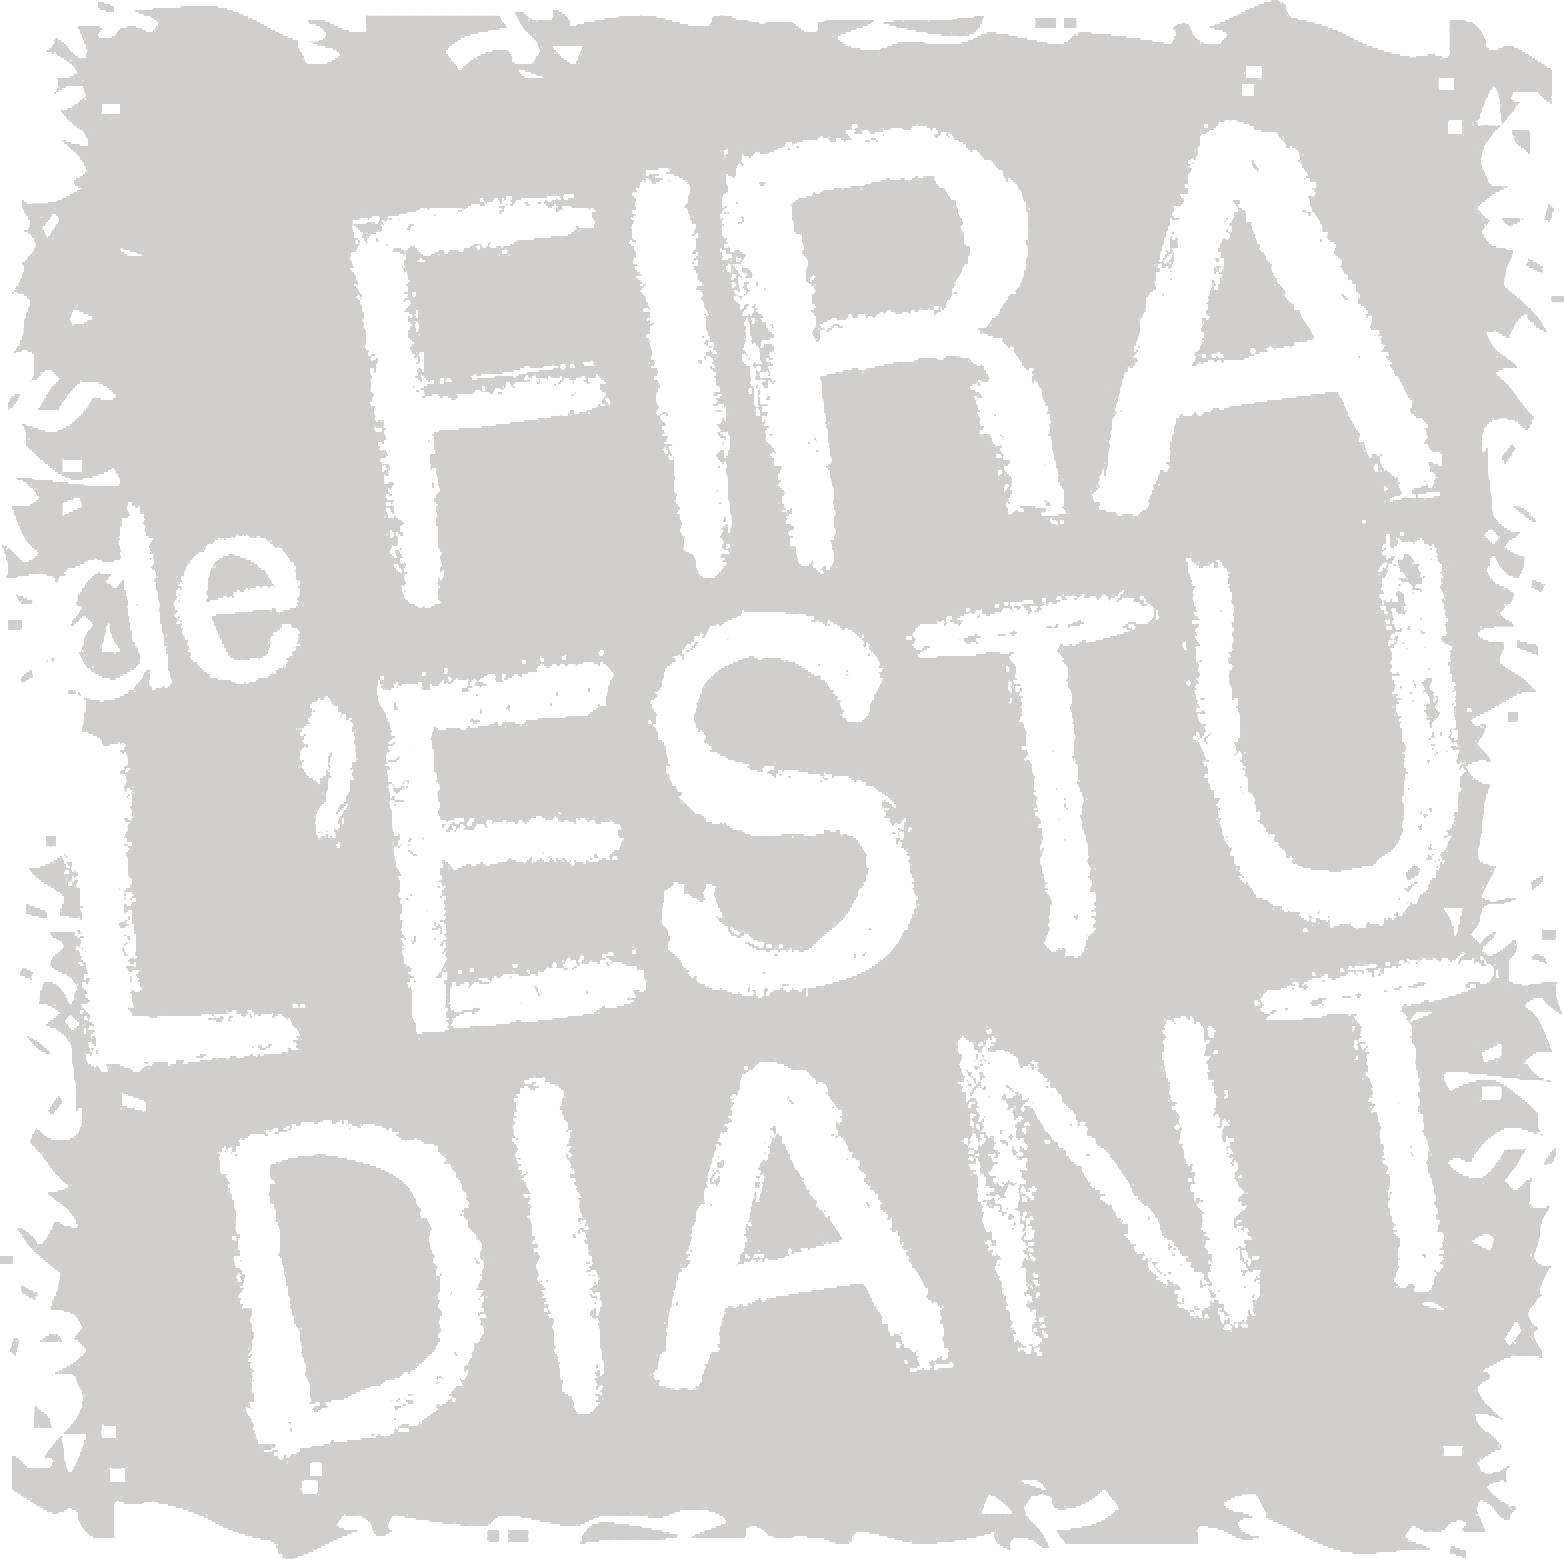 logo_firaestudiant_color blanc